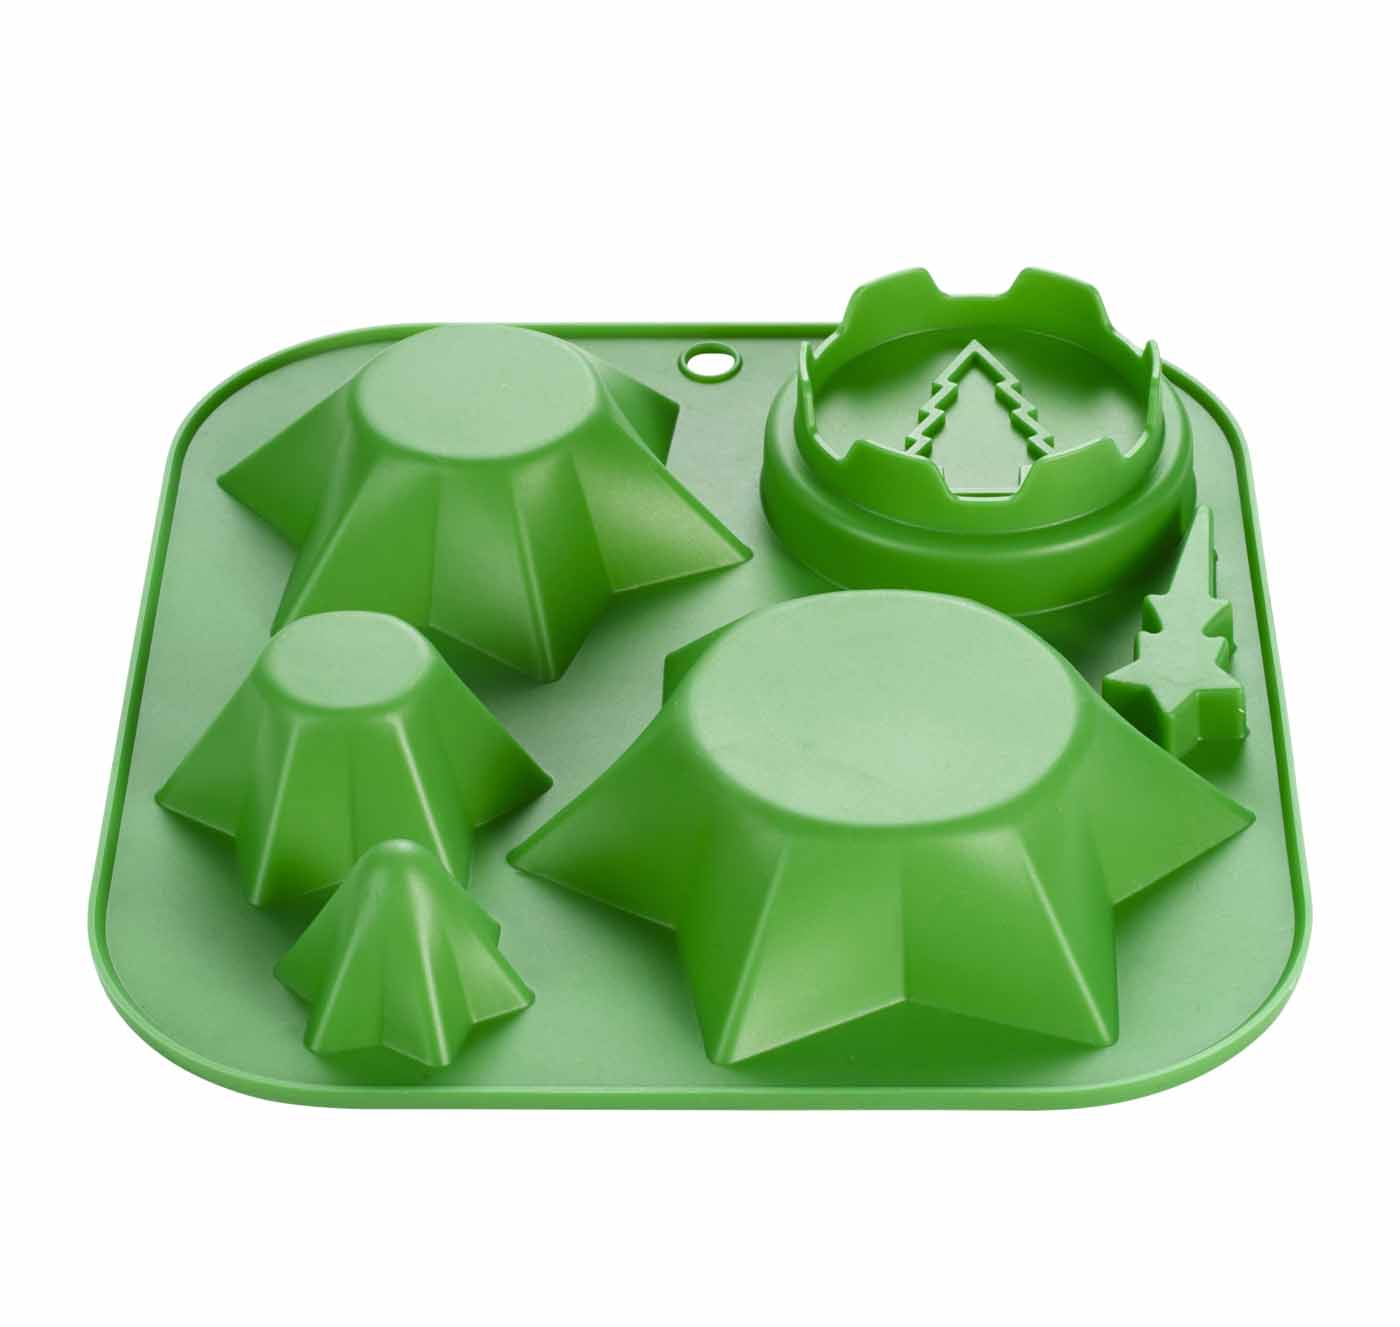 Lakeland Christmas Tree Cake Mould